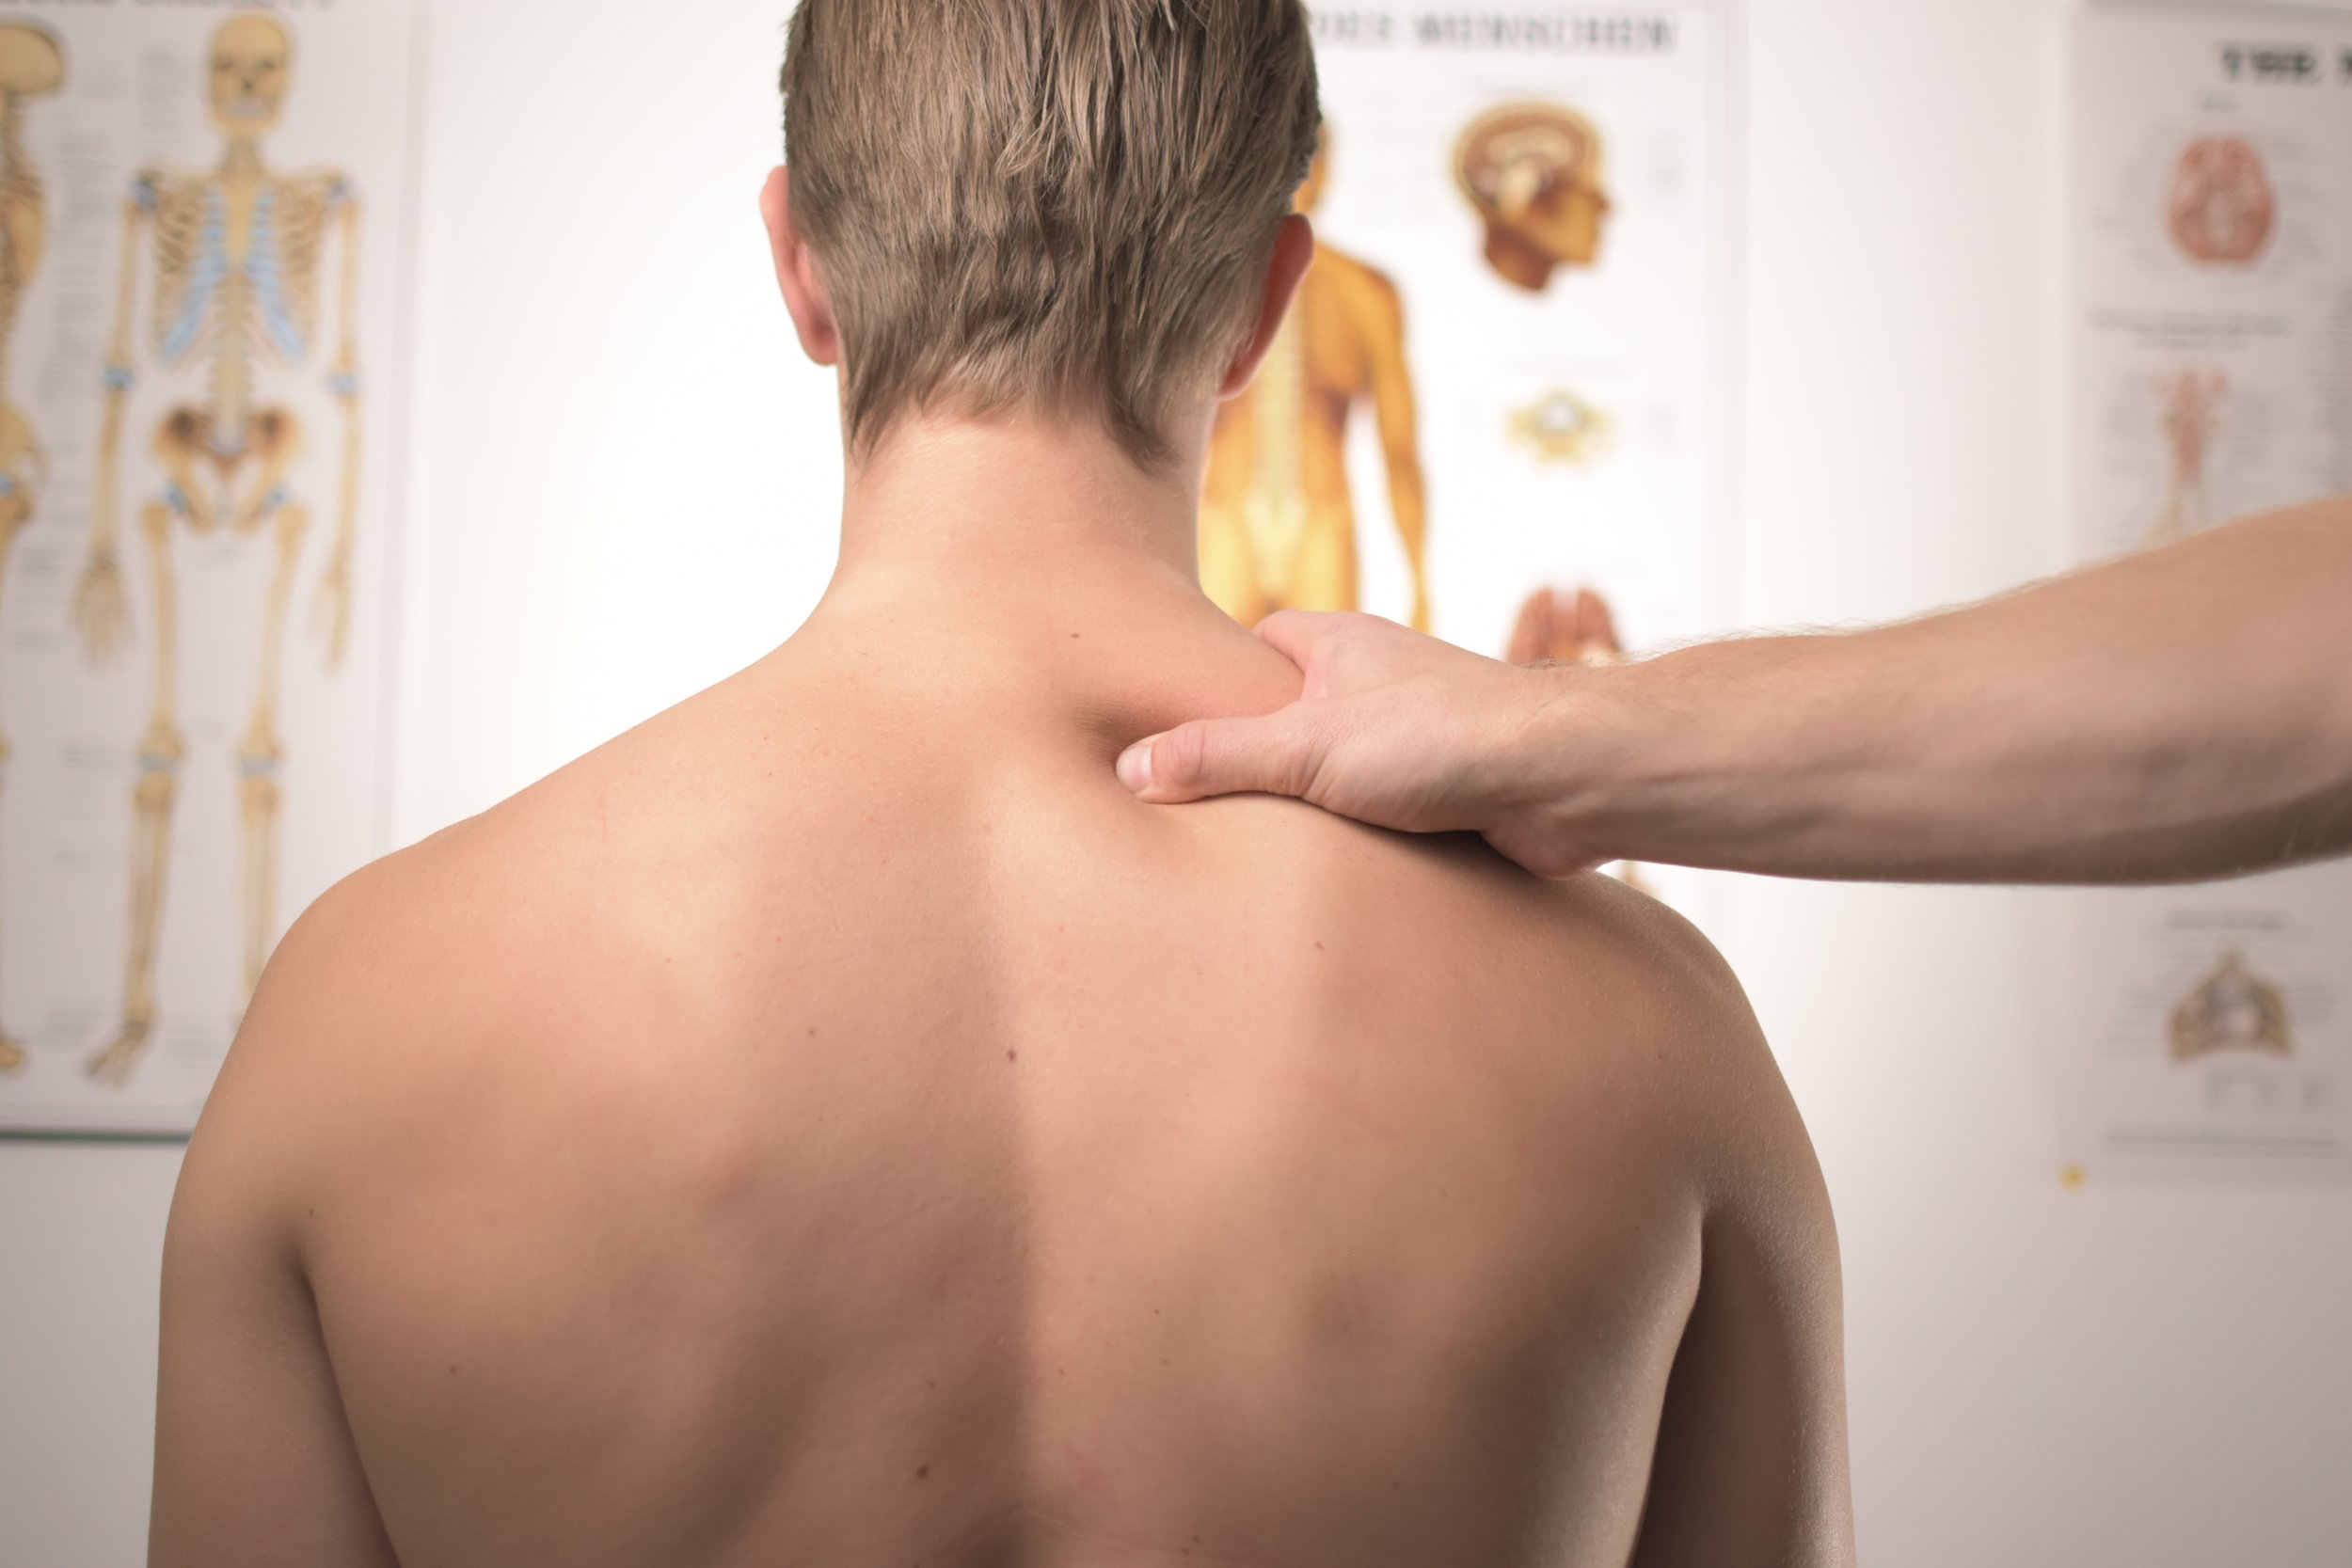 "- Your cervical spine (neck) supports and protects some very valuable cargo, your brain, brain stem, and spinal cord. Because of this fact you would assume that neck would be very stable and stiff, instead, the neck needs mobility in order for your eyes to work to the best of their ability. But if you've ever woken up with a ""crick"" in your neck, you know how bad it feels when your neck is stiff. The neck is similar to the Lumbar Spine, joints in the back and a disc for cushion in between each vertebrae. Pain is caused by immobility, but immobility can be caused for a variety of reasons including Osteoarthritis, Bulging Discs, and Tempromandibular Dysfunction.Neck pain can also present in many areas:HeadacheShoulder BladeArmHandThroatUpper chestGeneral stretching and maintaining good posture are ways to prevent neck pain, but if you already have neck pain then you need corrective techniques/exercises/stretches specific to your problem.If you have any of these symptoms, let us know in the form below and we will contact you about ways to help."